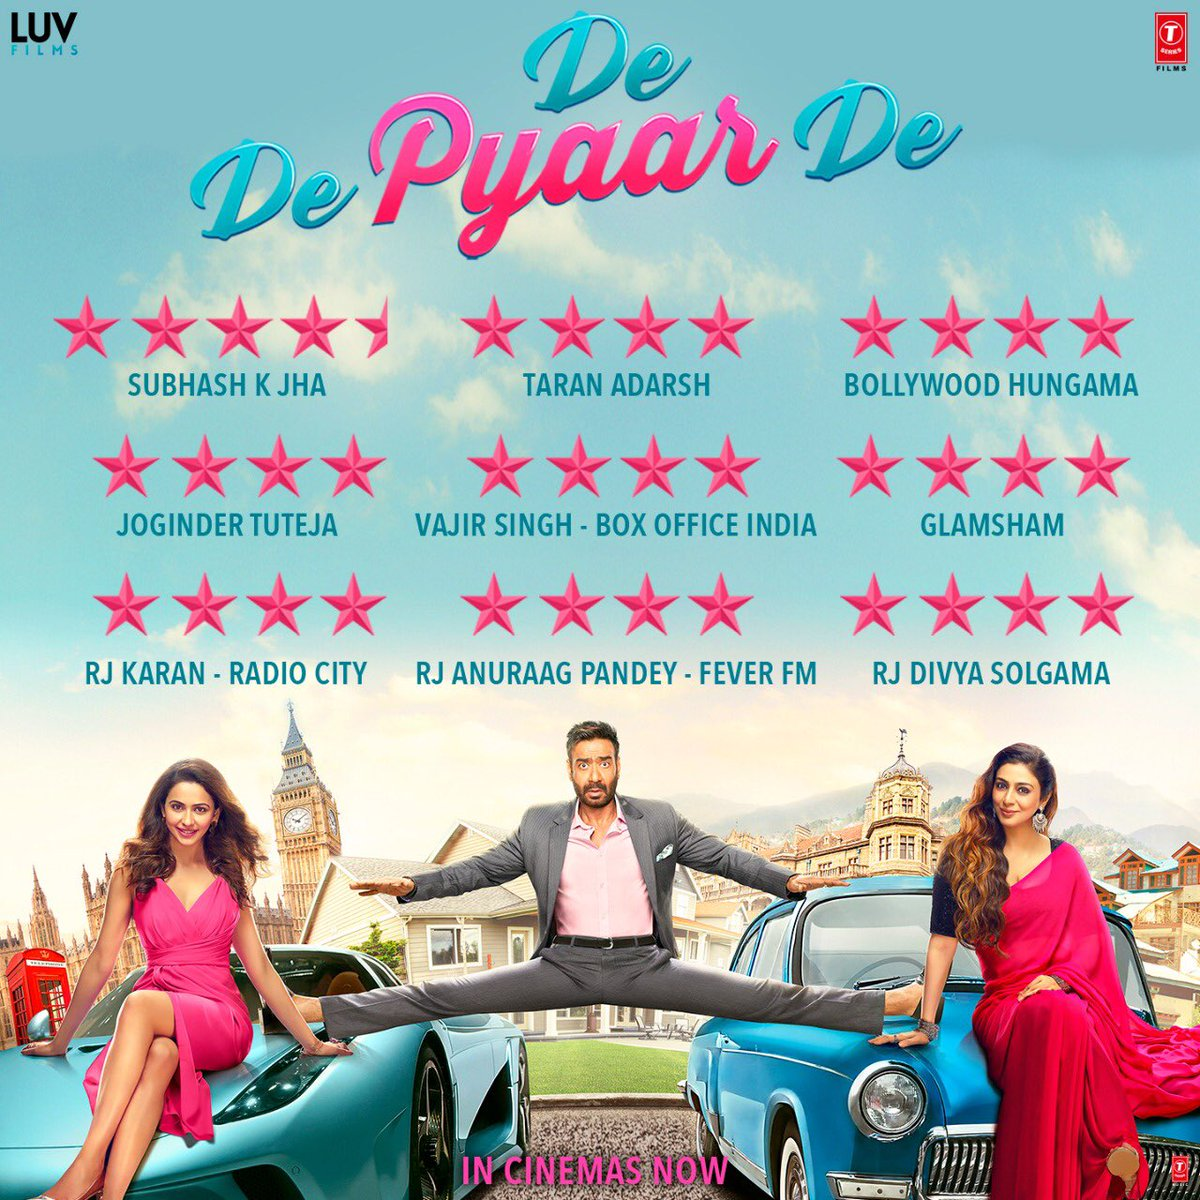 When the day starts like this 😀😀😀🙏🙏🙏 keep the pyaar pouring in ❤️ @DeDePyaarDe